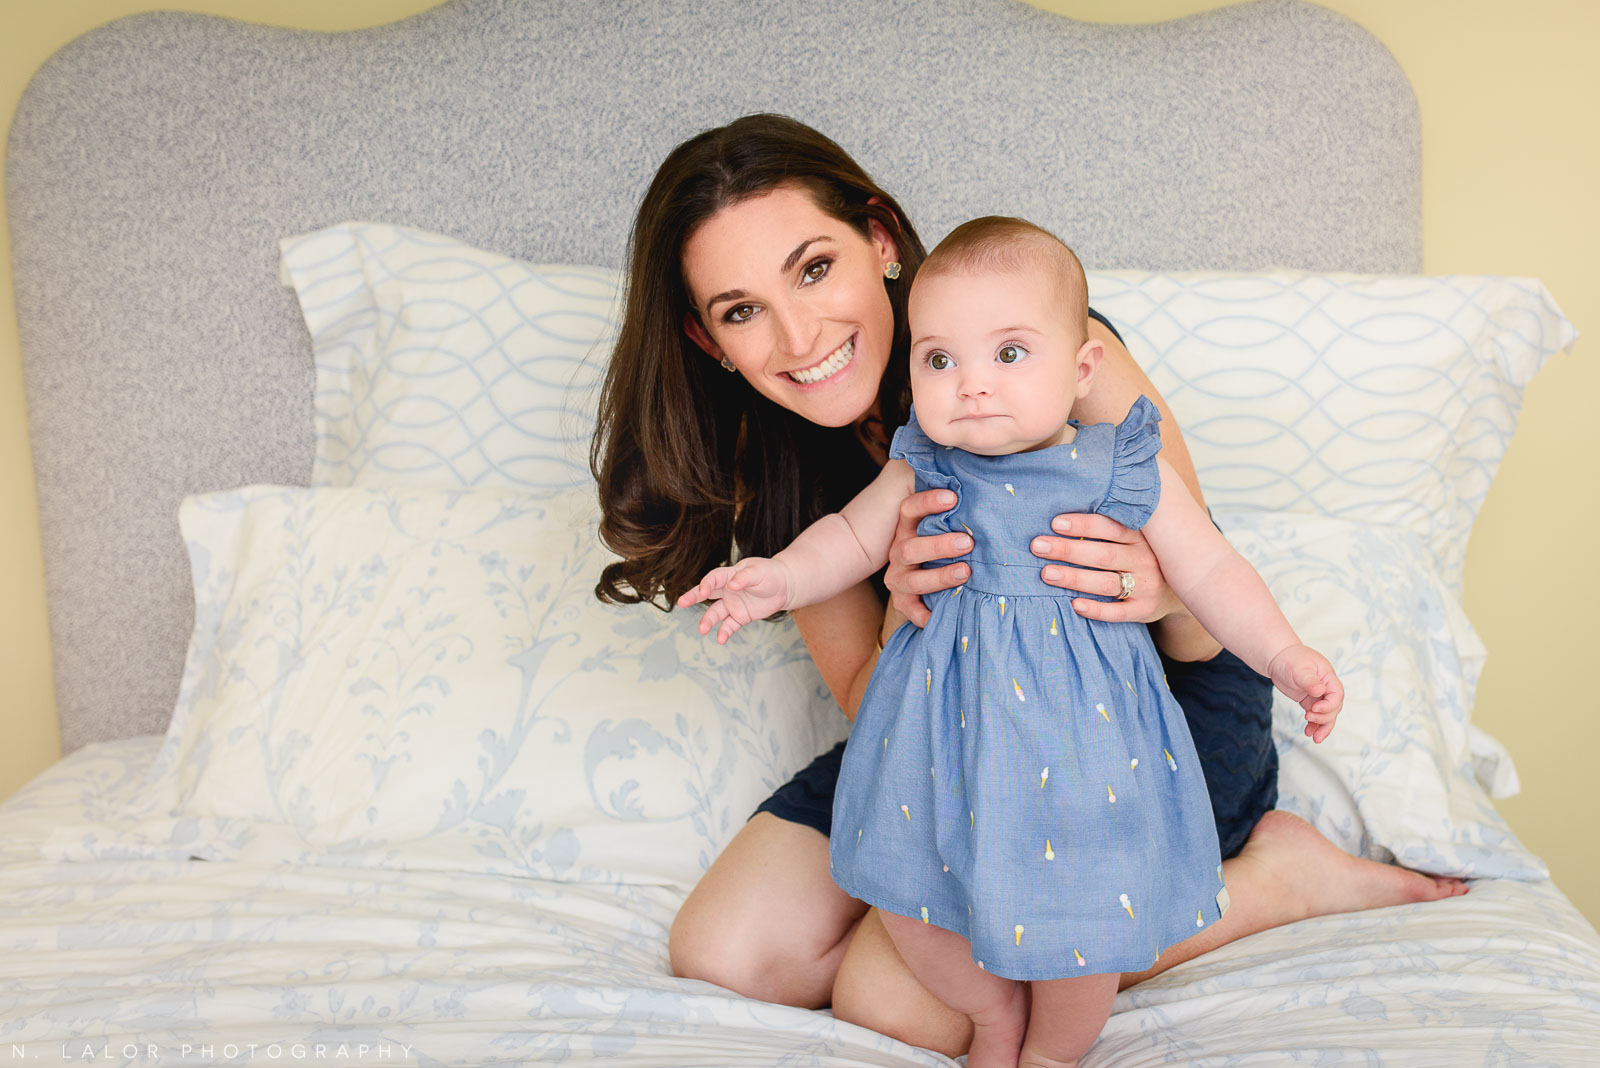 Mom with her baby girl. Lifestyle, editorial session with N. Lalor Photography in New Canaan, CT.